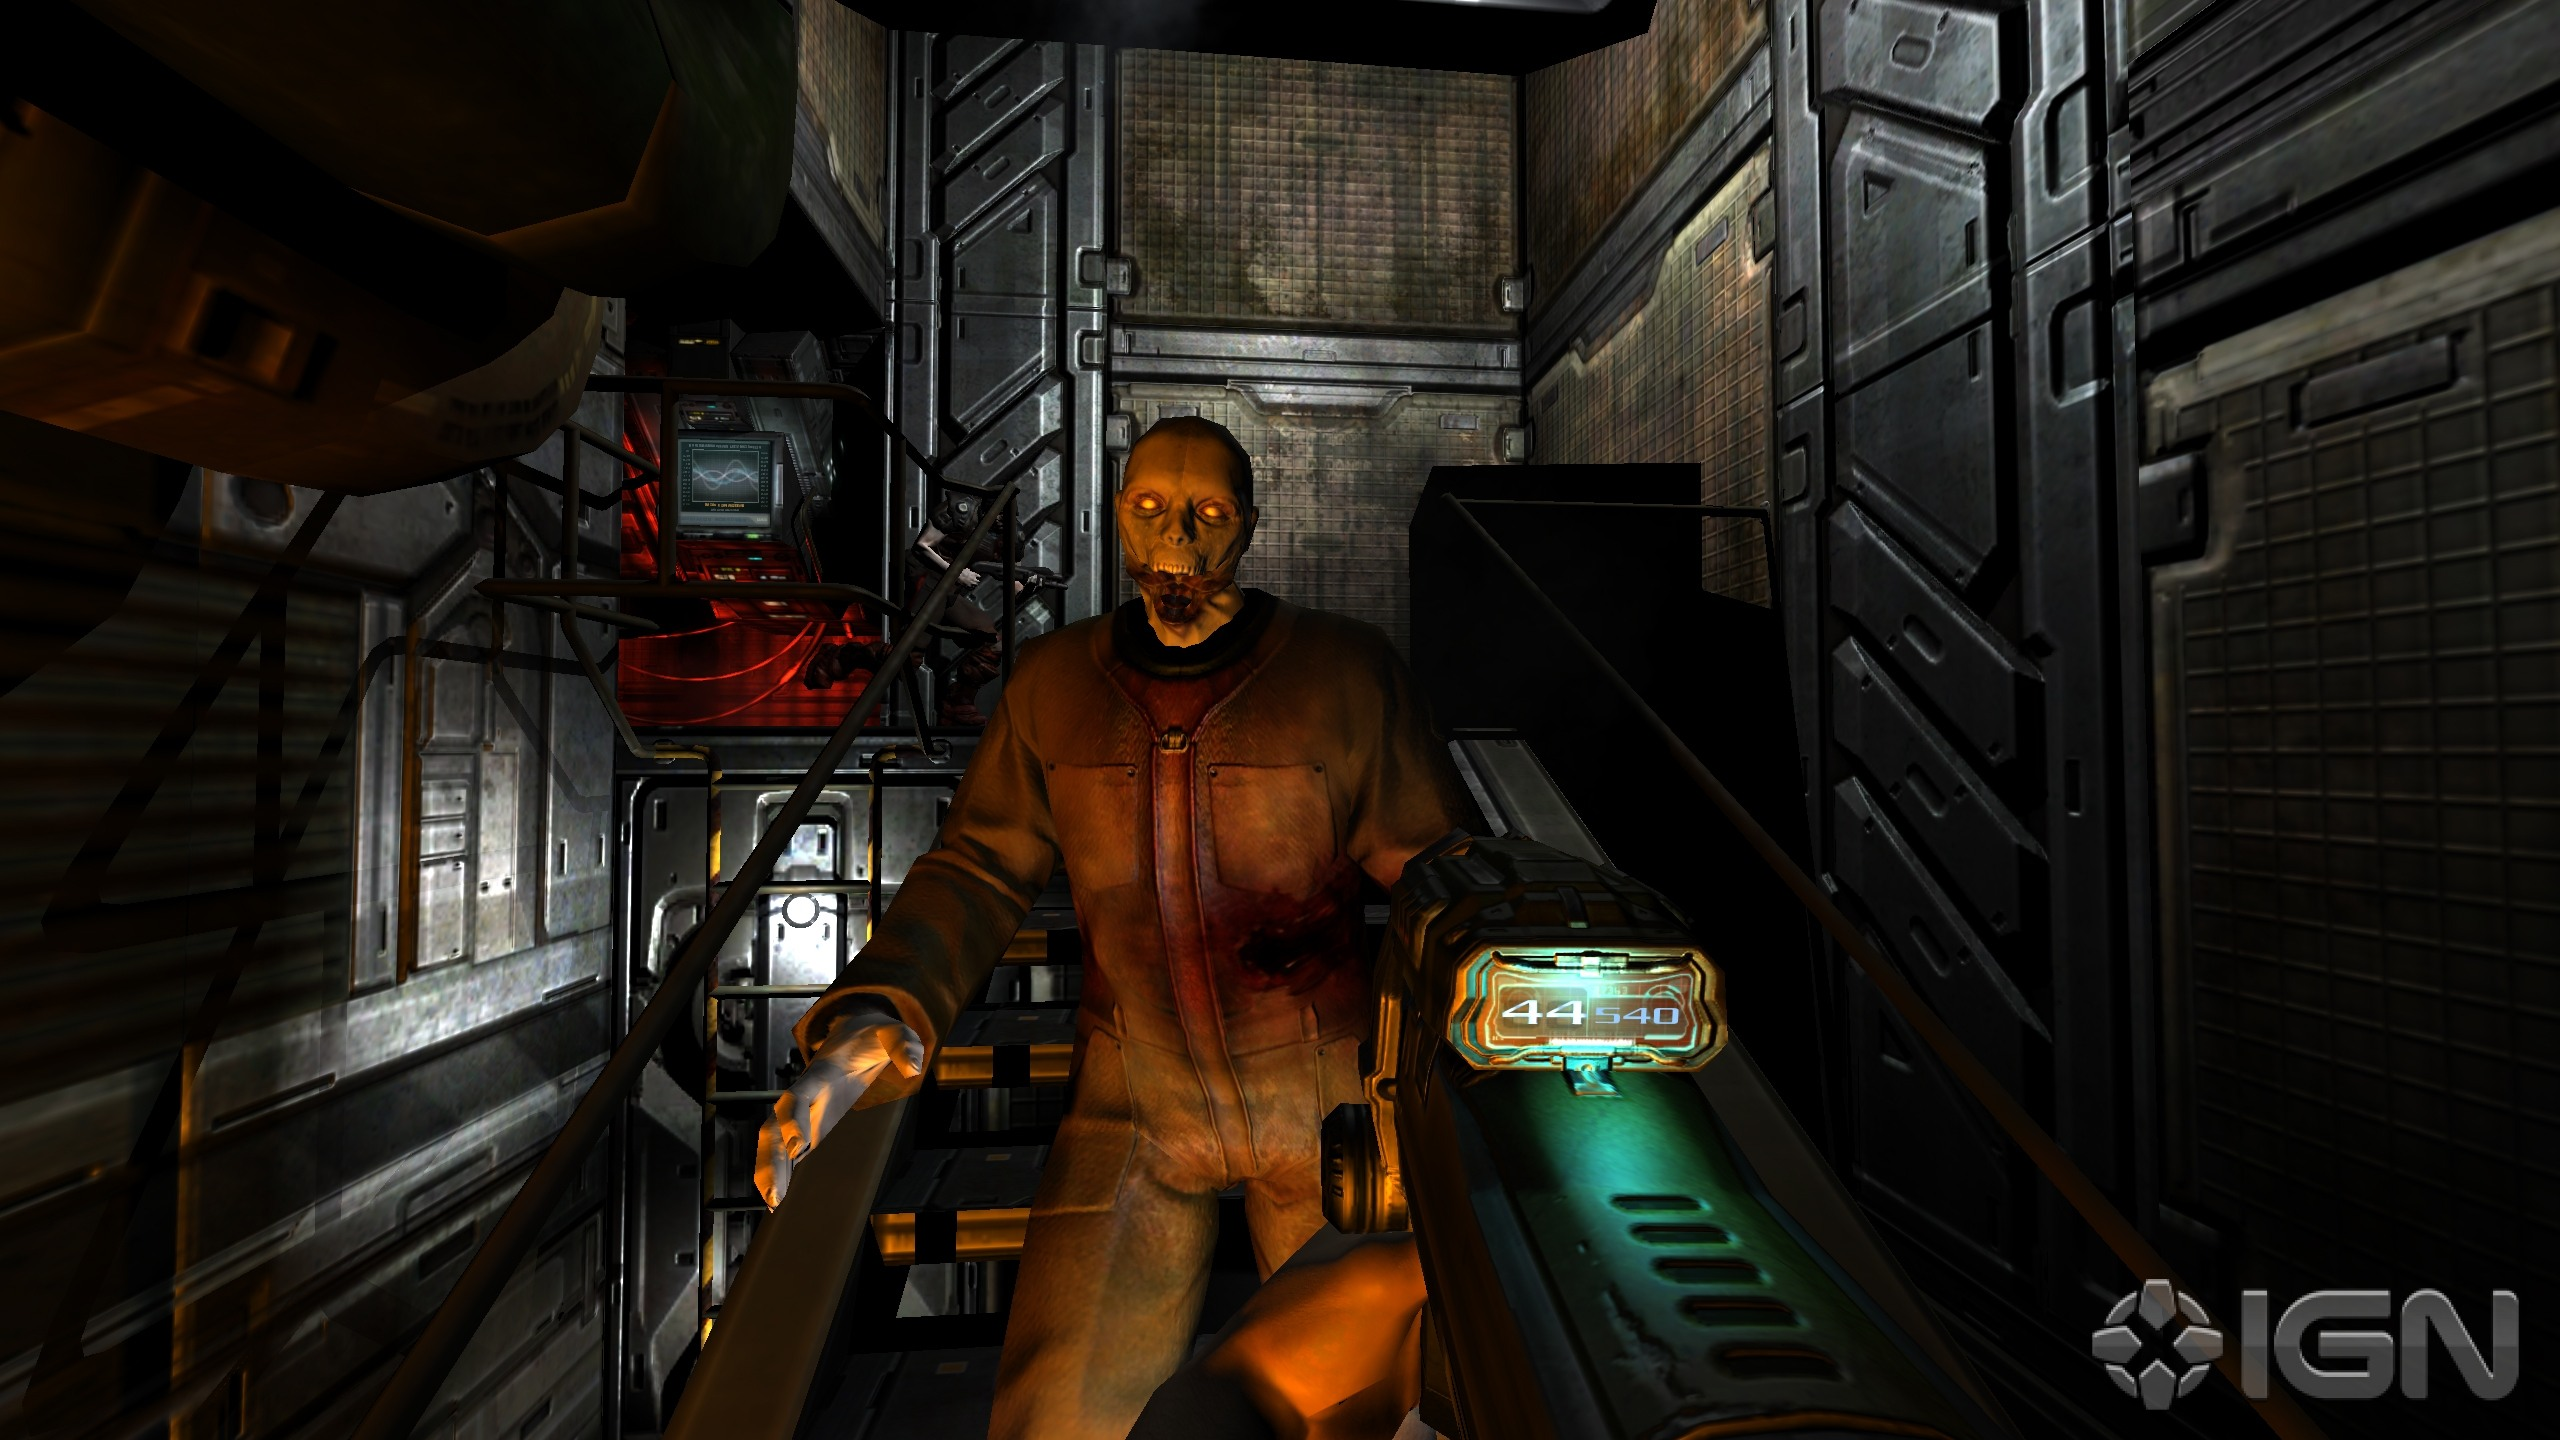 Doom 3 BFG Edition Screenshots Pictures Wallpapers   PC   IGN 2560x1440